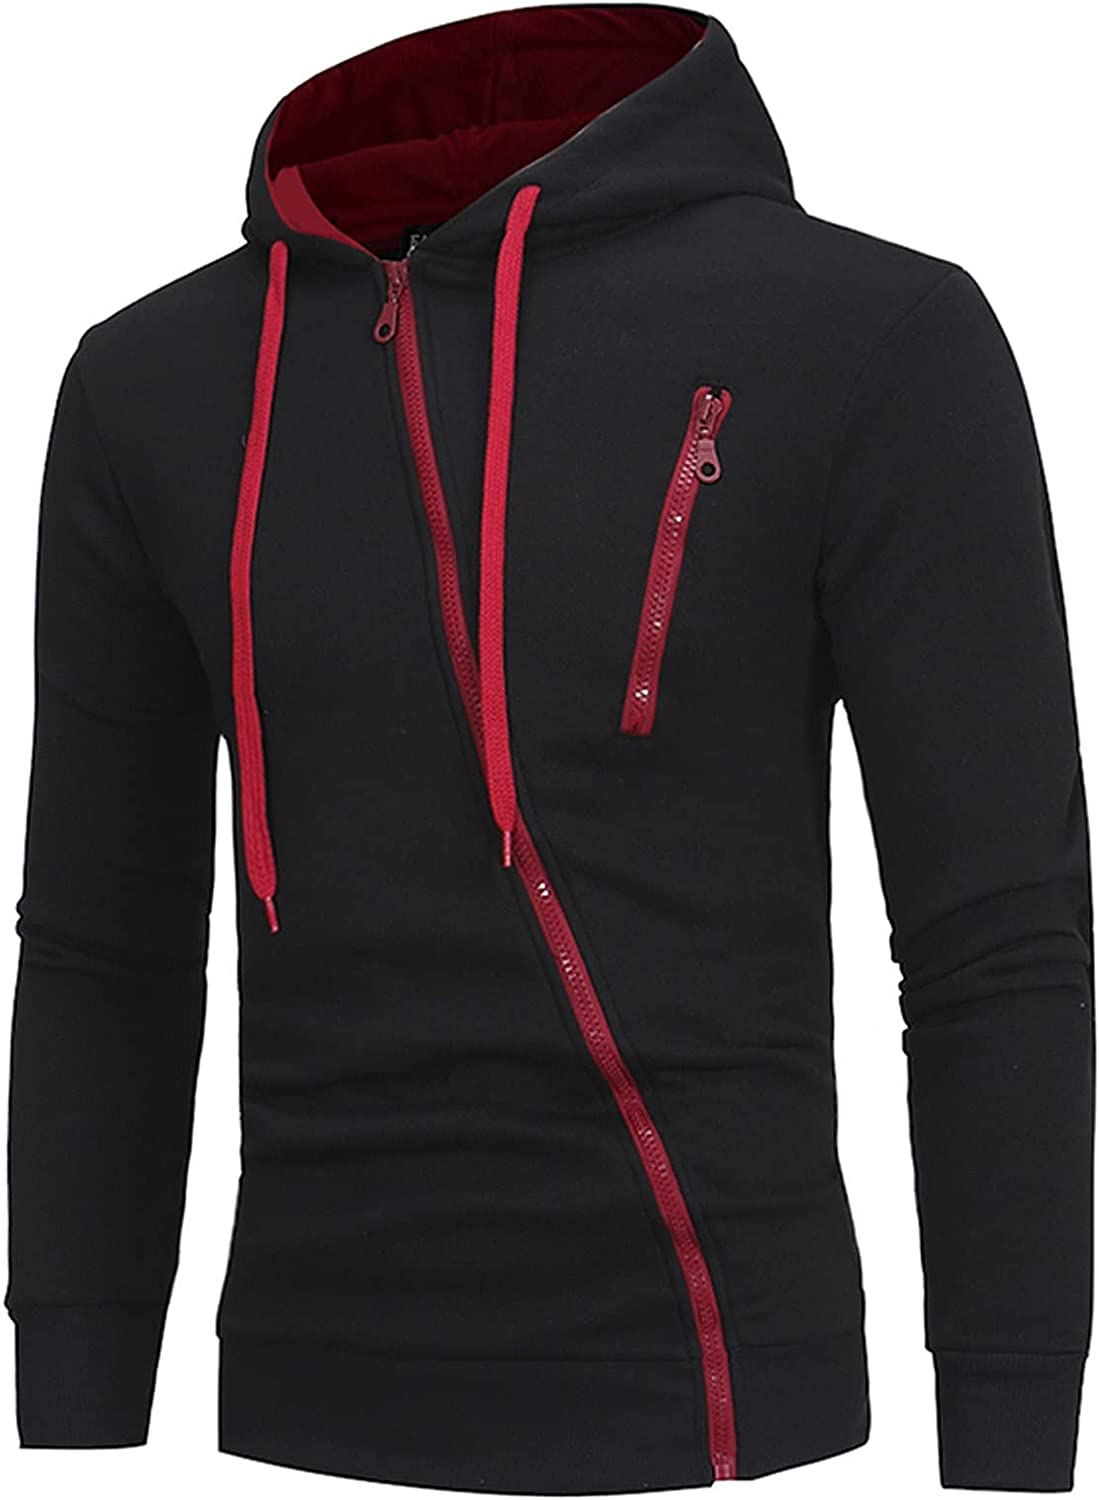 XXBR Oblique Zipper Hoodies for Mens, Fall Color Block Outdoor Drawstring Hooded Sweatshirts Muscles Workout Pullover